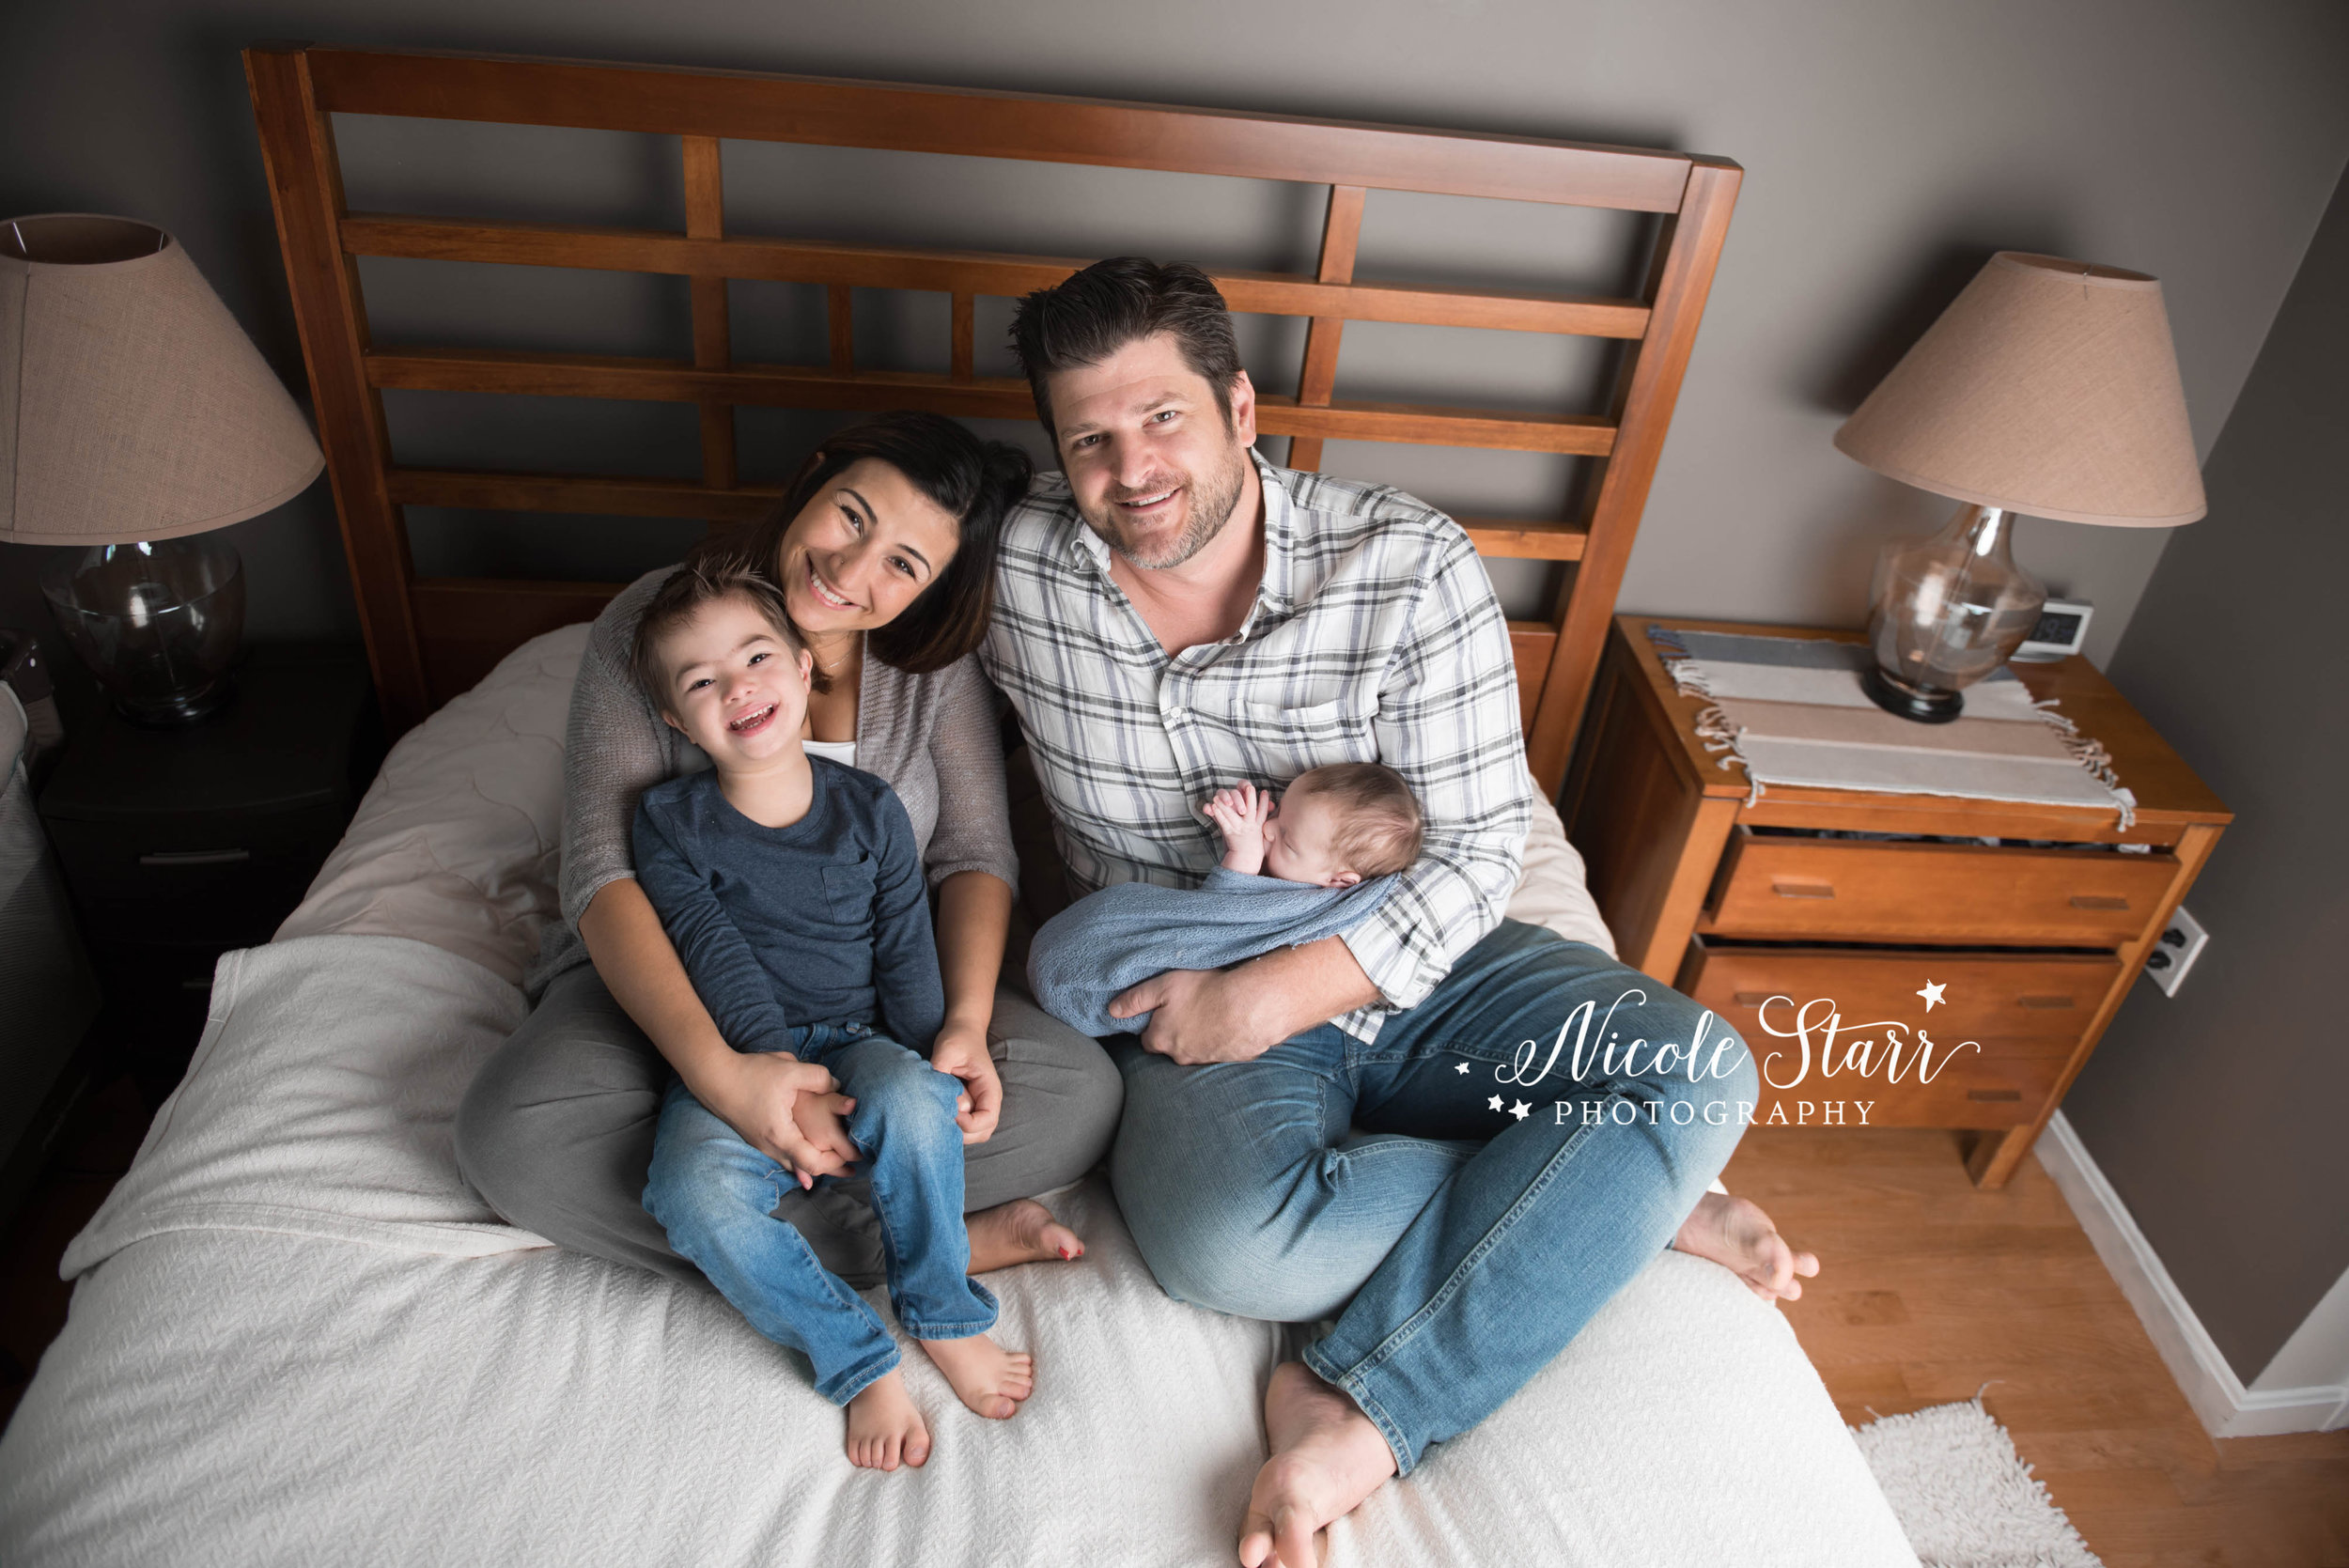 Saratoga Springs lifestyle newborn photo session at home